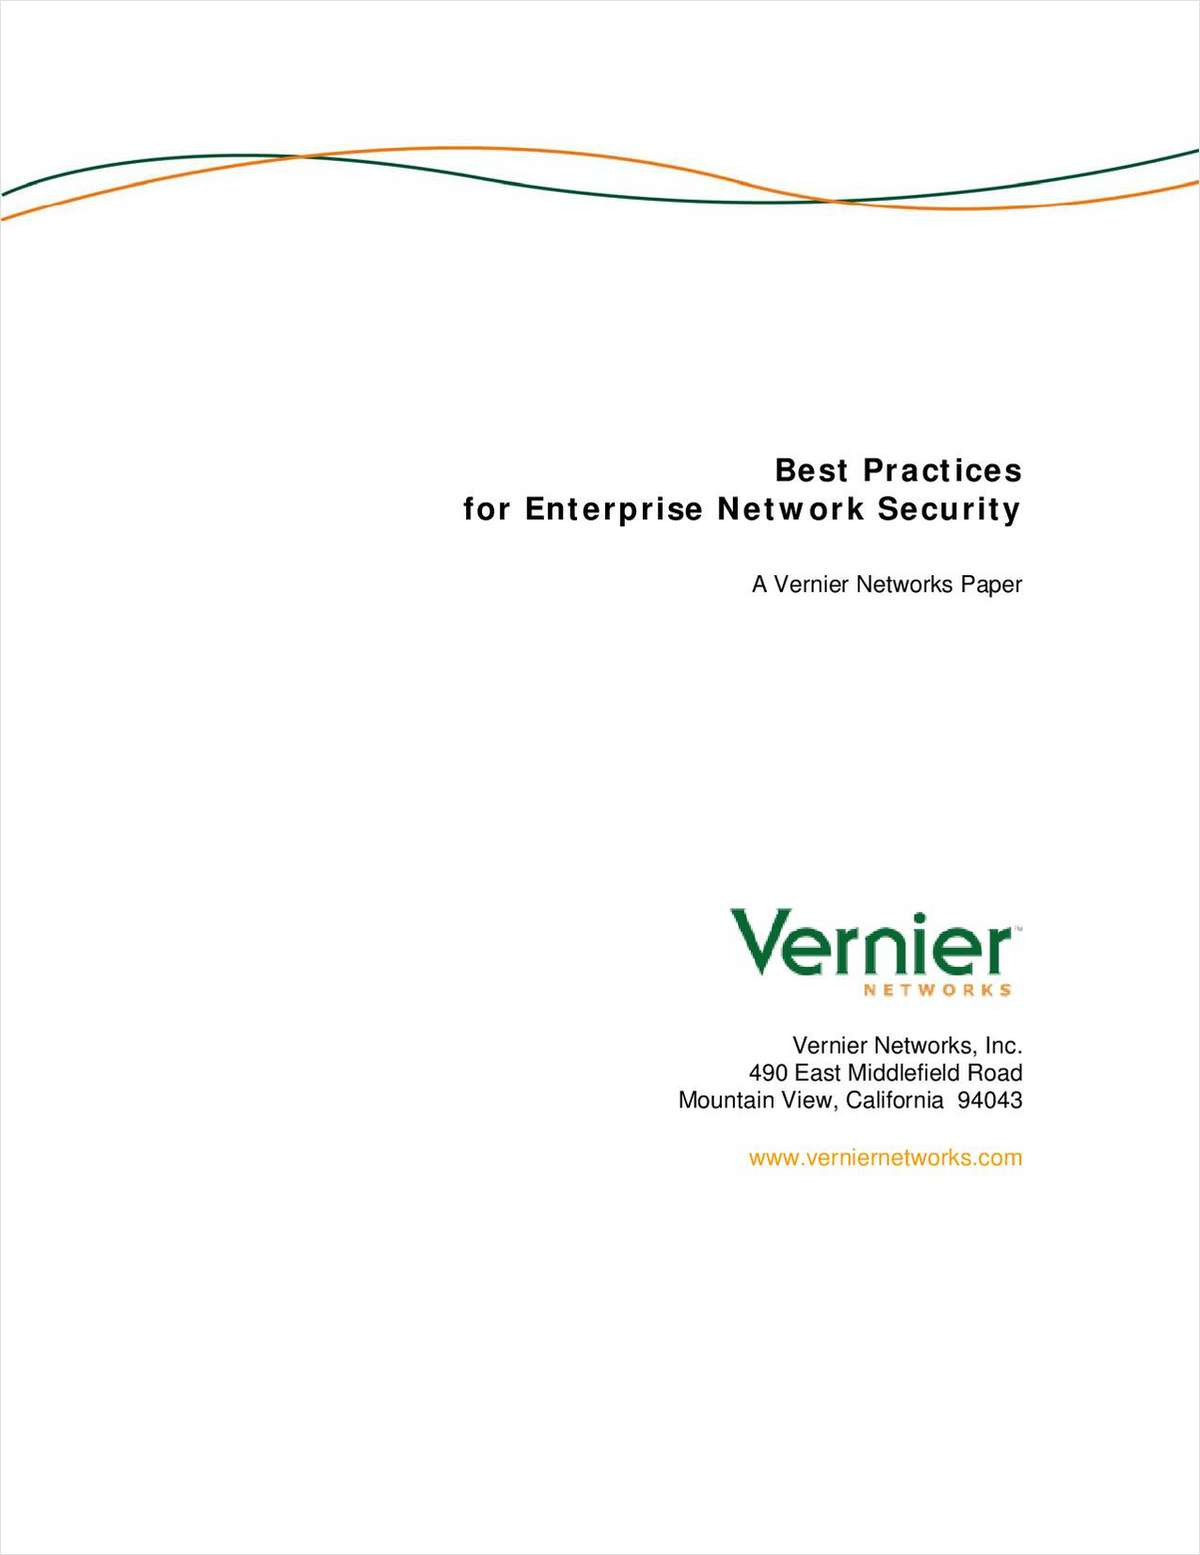 BEST PRACTICES for Enterprise Network Security